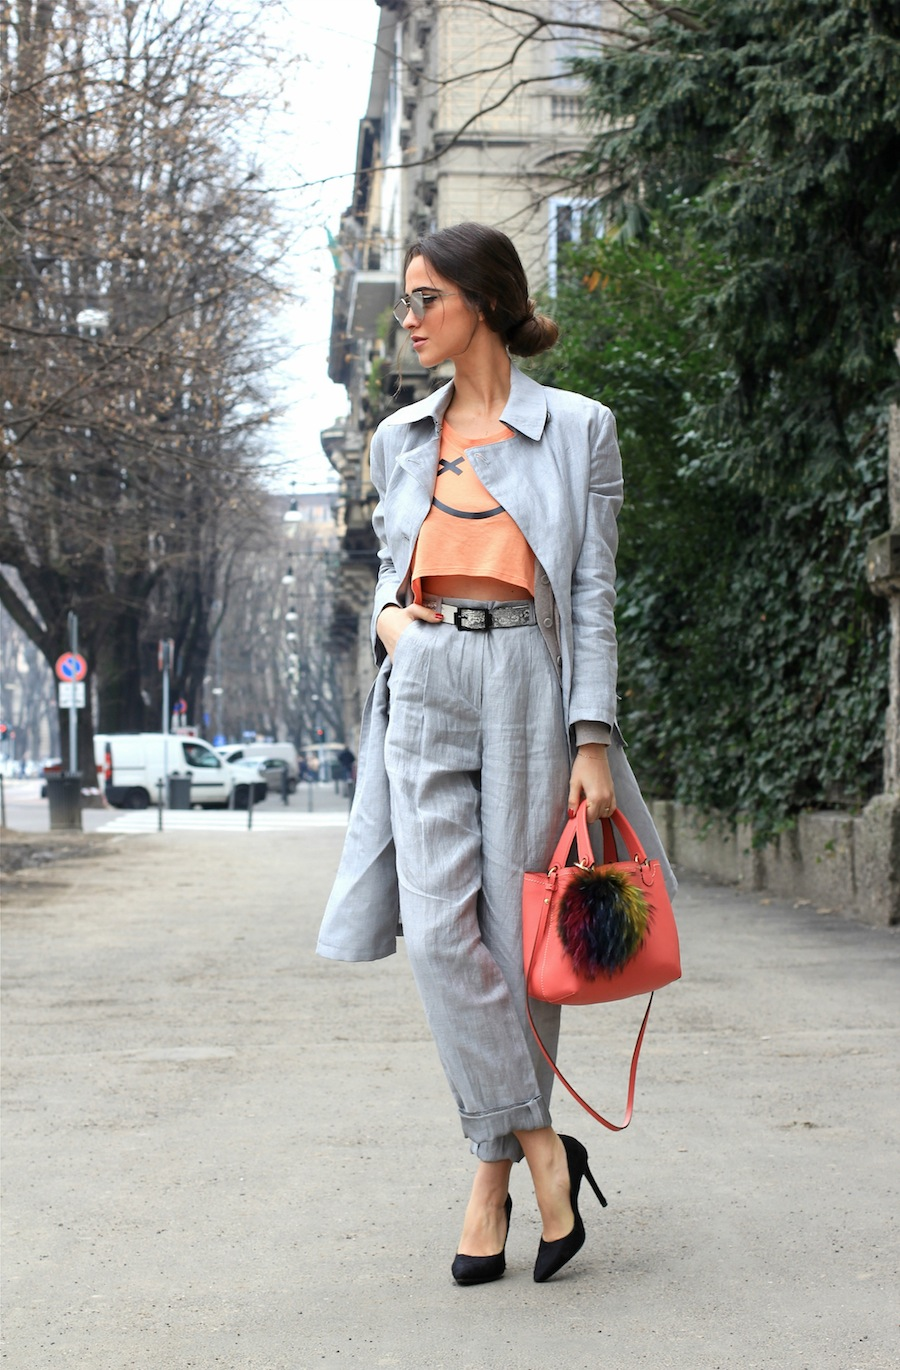 blogger armani street style milan fashion week mode bag jacket influlencer best